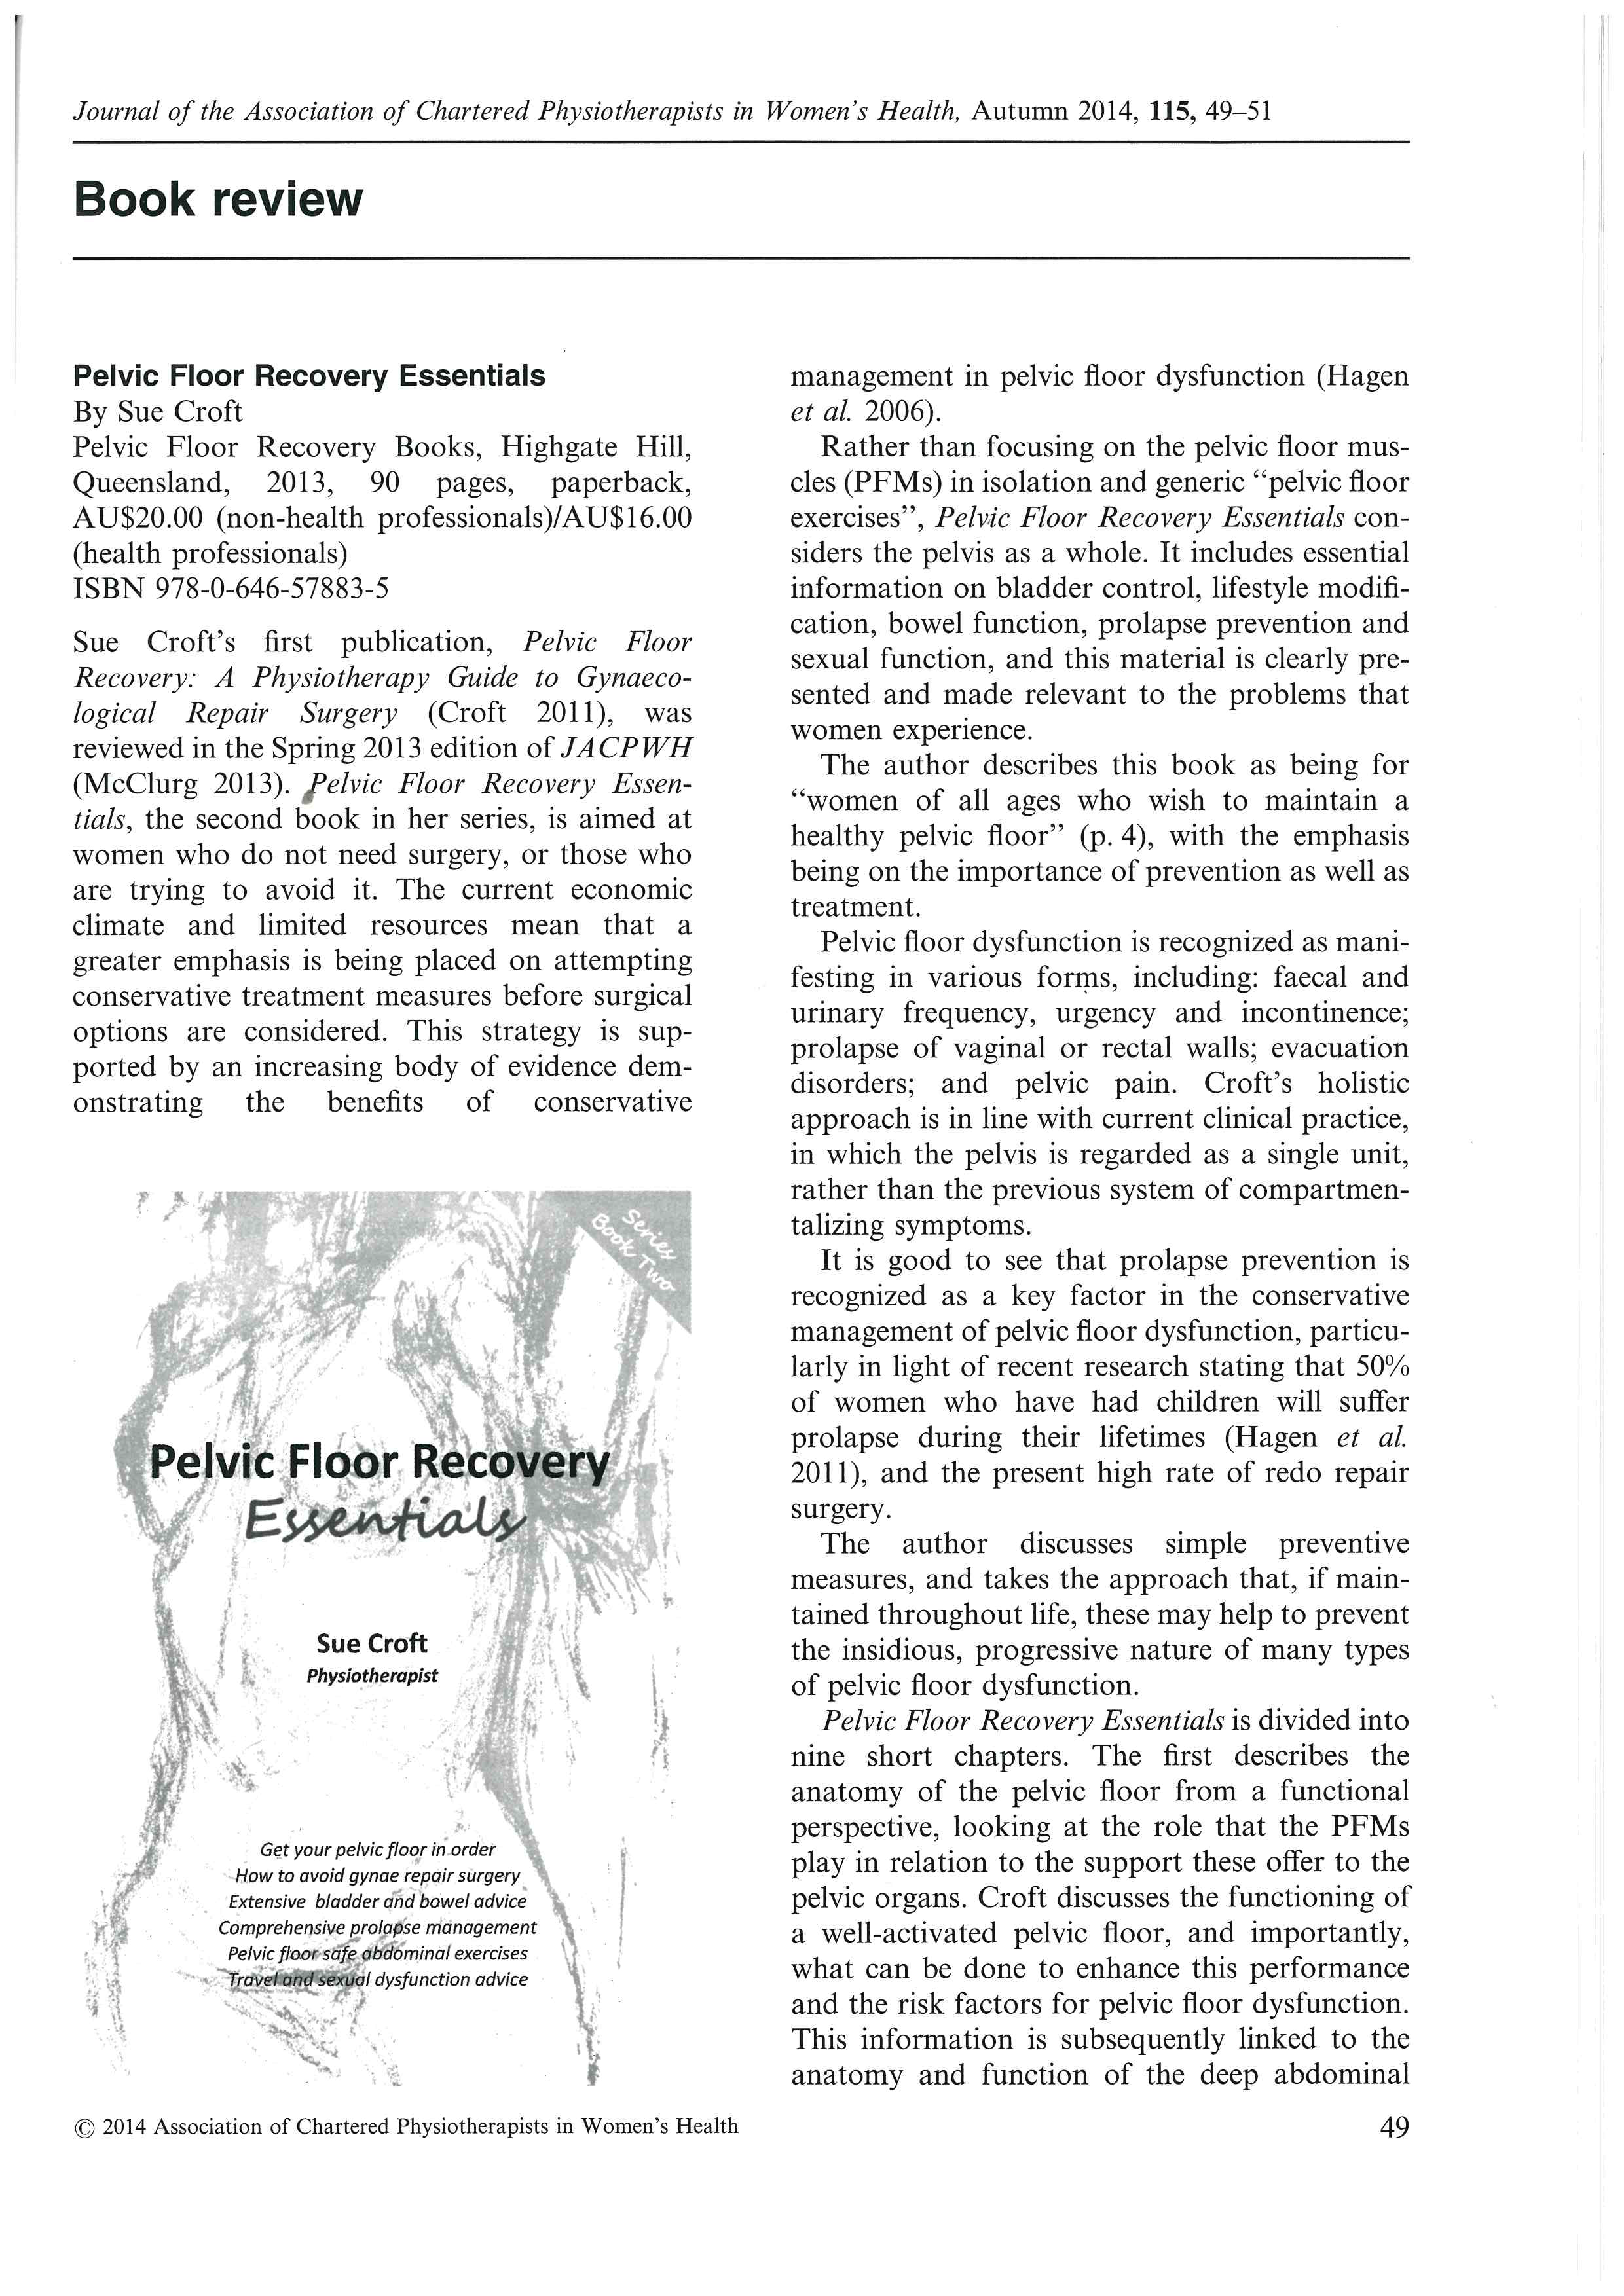 UK Journal ACP Women's Health Pelvic Floor Essentials book review_Page_1